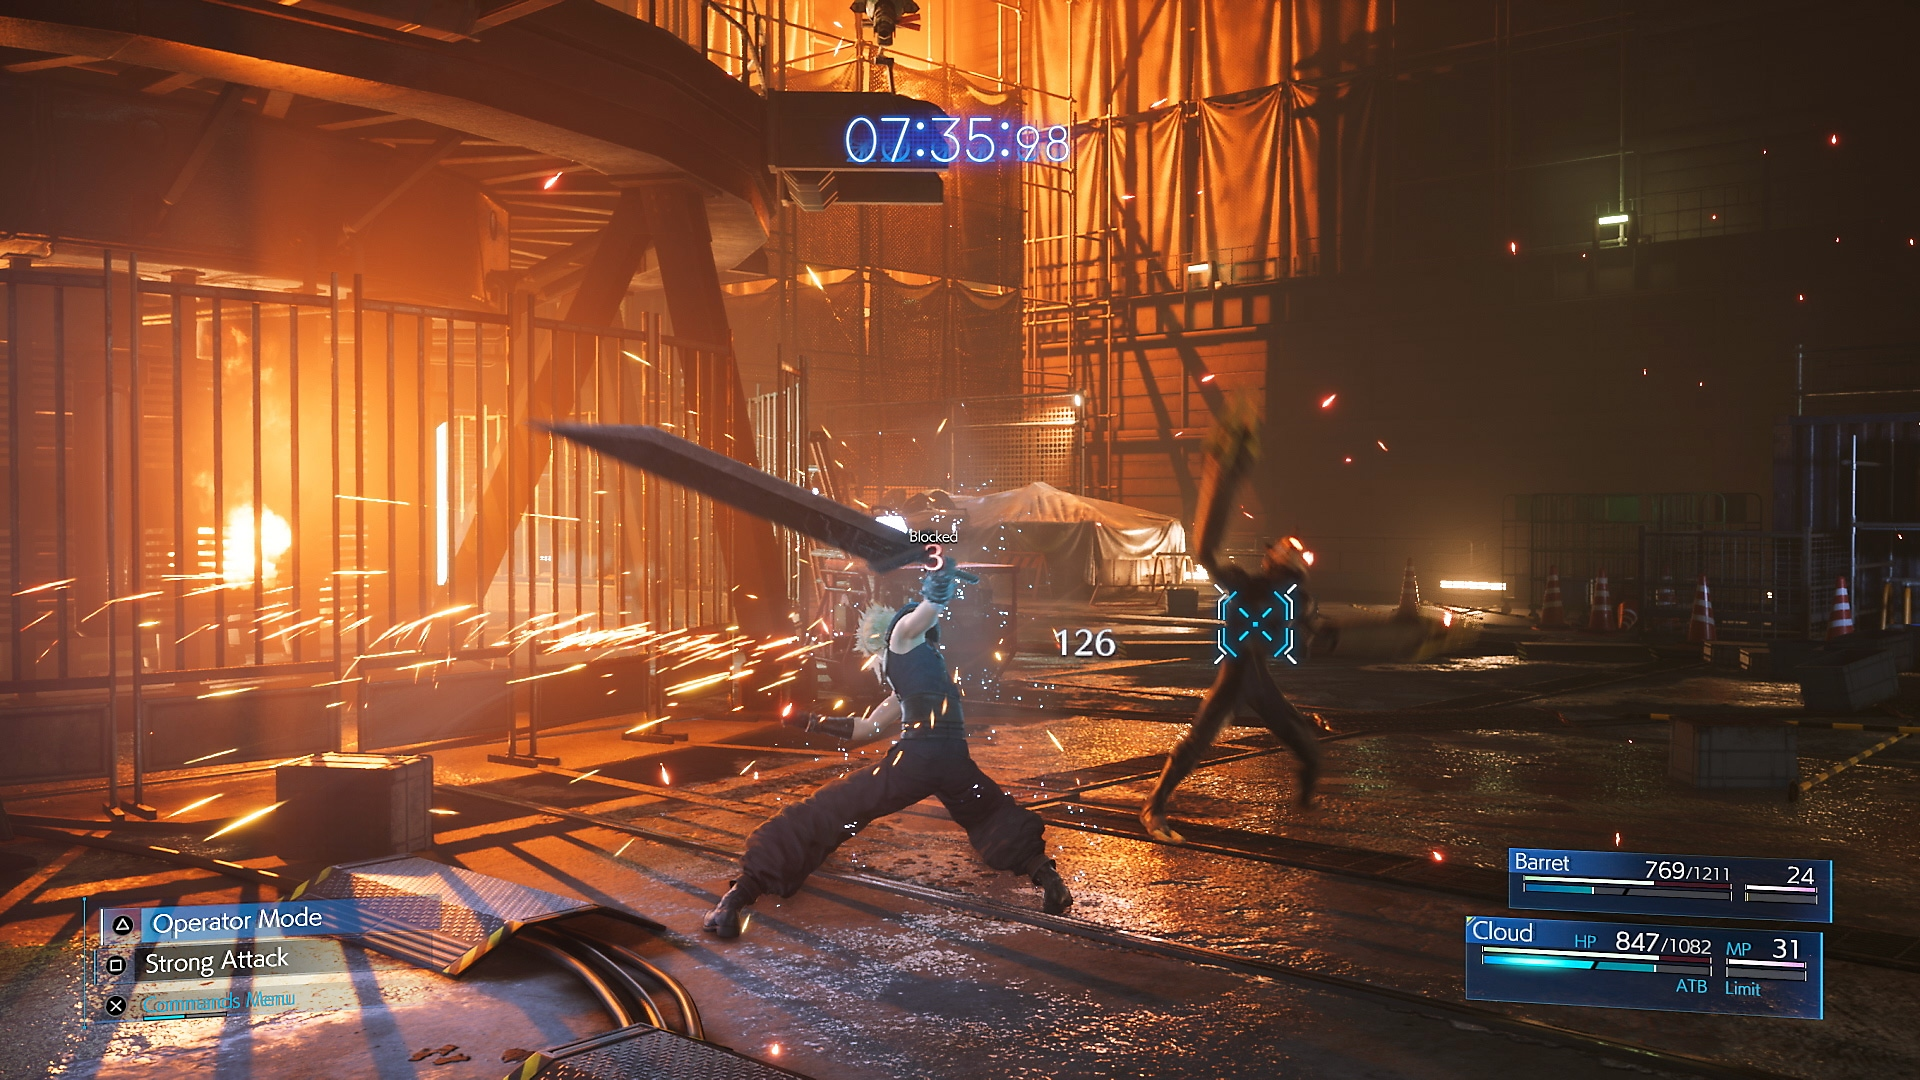 Final Fantasy VII Remake Intergrade - Gallery Screenshot 3